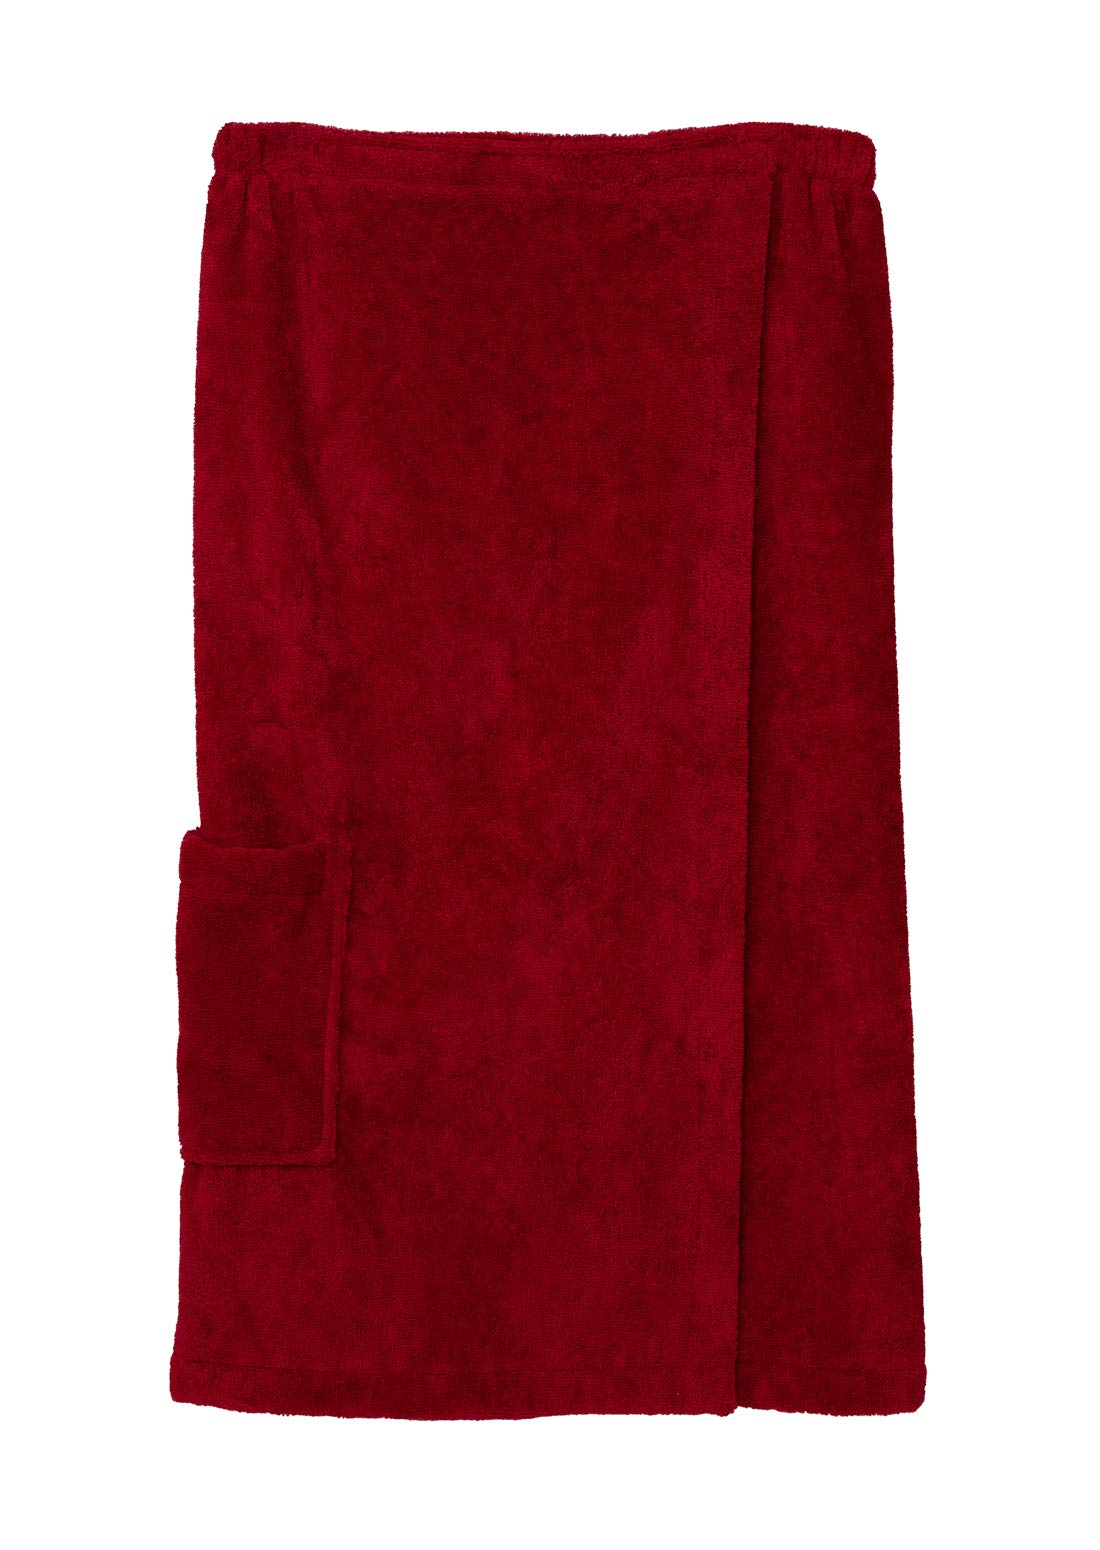 TowelSelections Women's Wrap, Shower & Bath, Water Absorbent Cotton Lined Fleece Large/X-Large American Beauty by TowelSelections (Image #1)